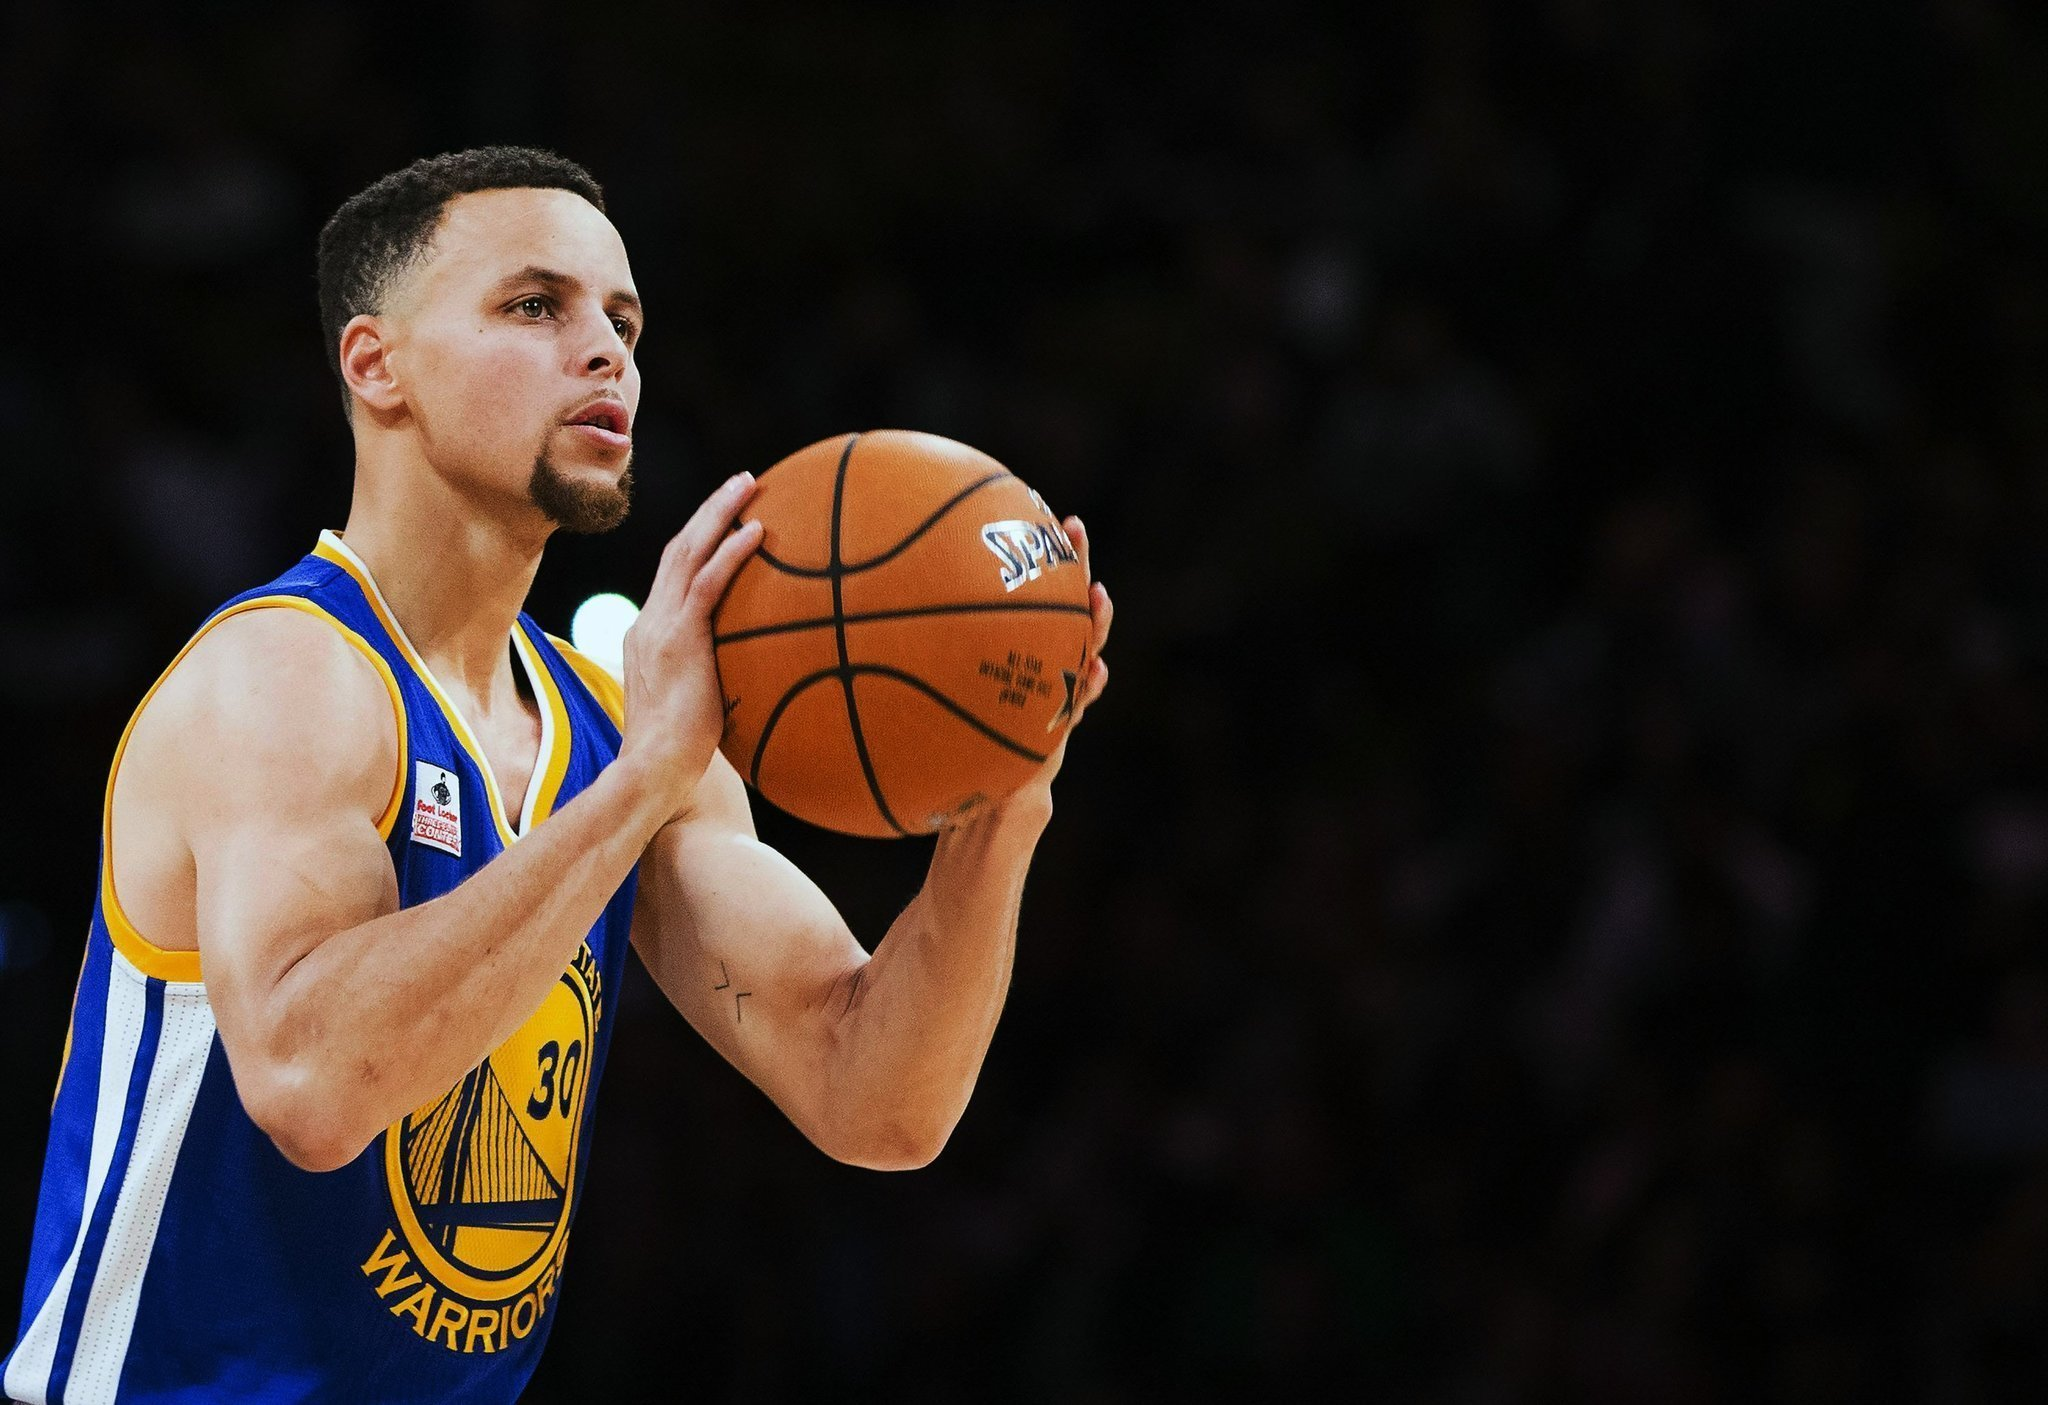 Cute Animated Wallpapers For Mobile Stephen Curry Wallpapers